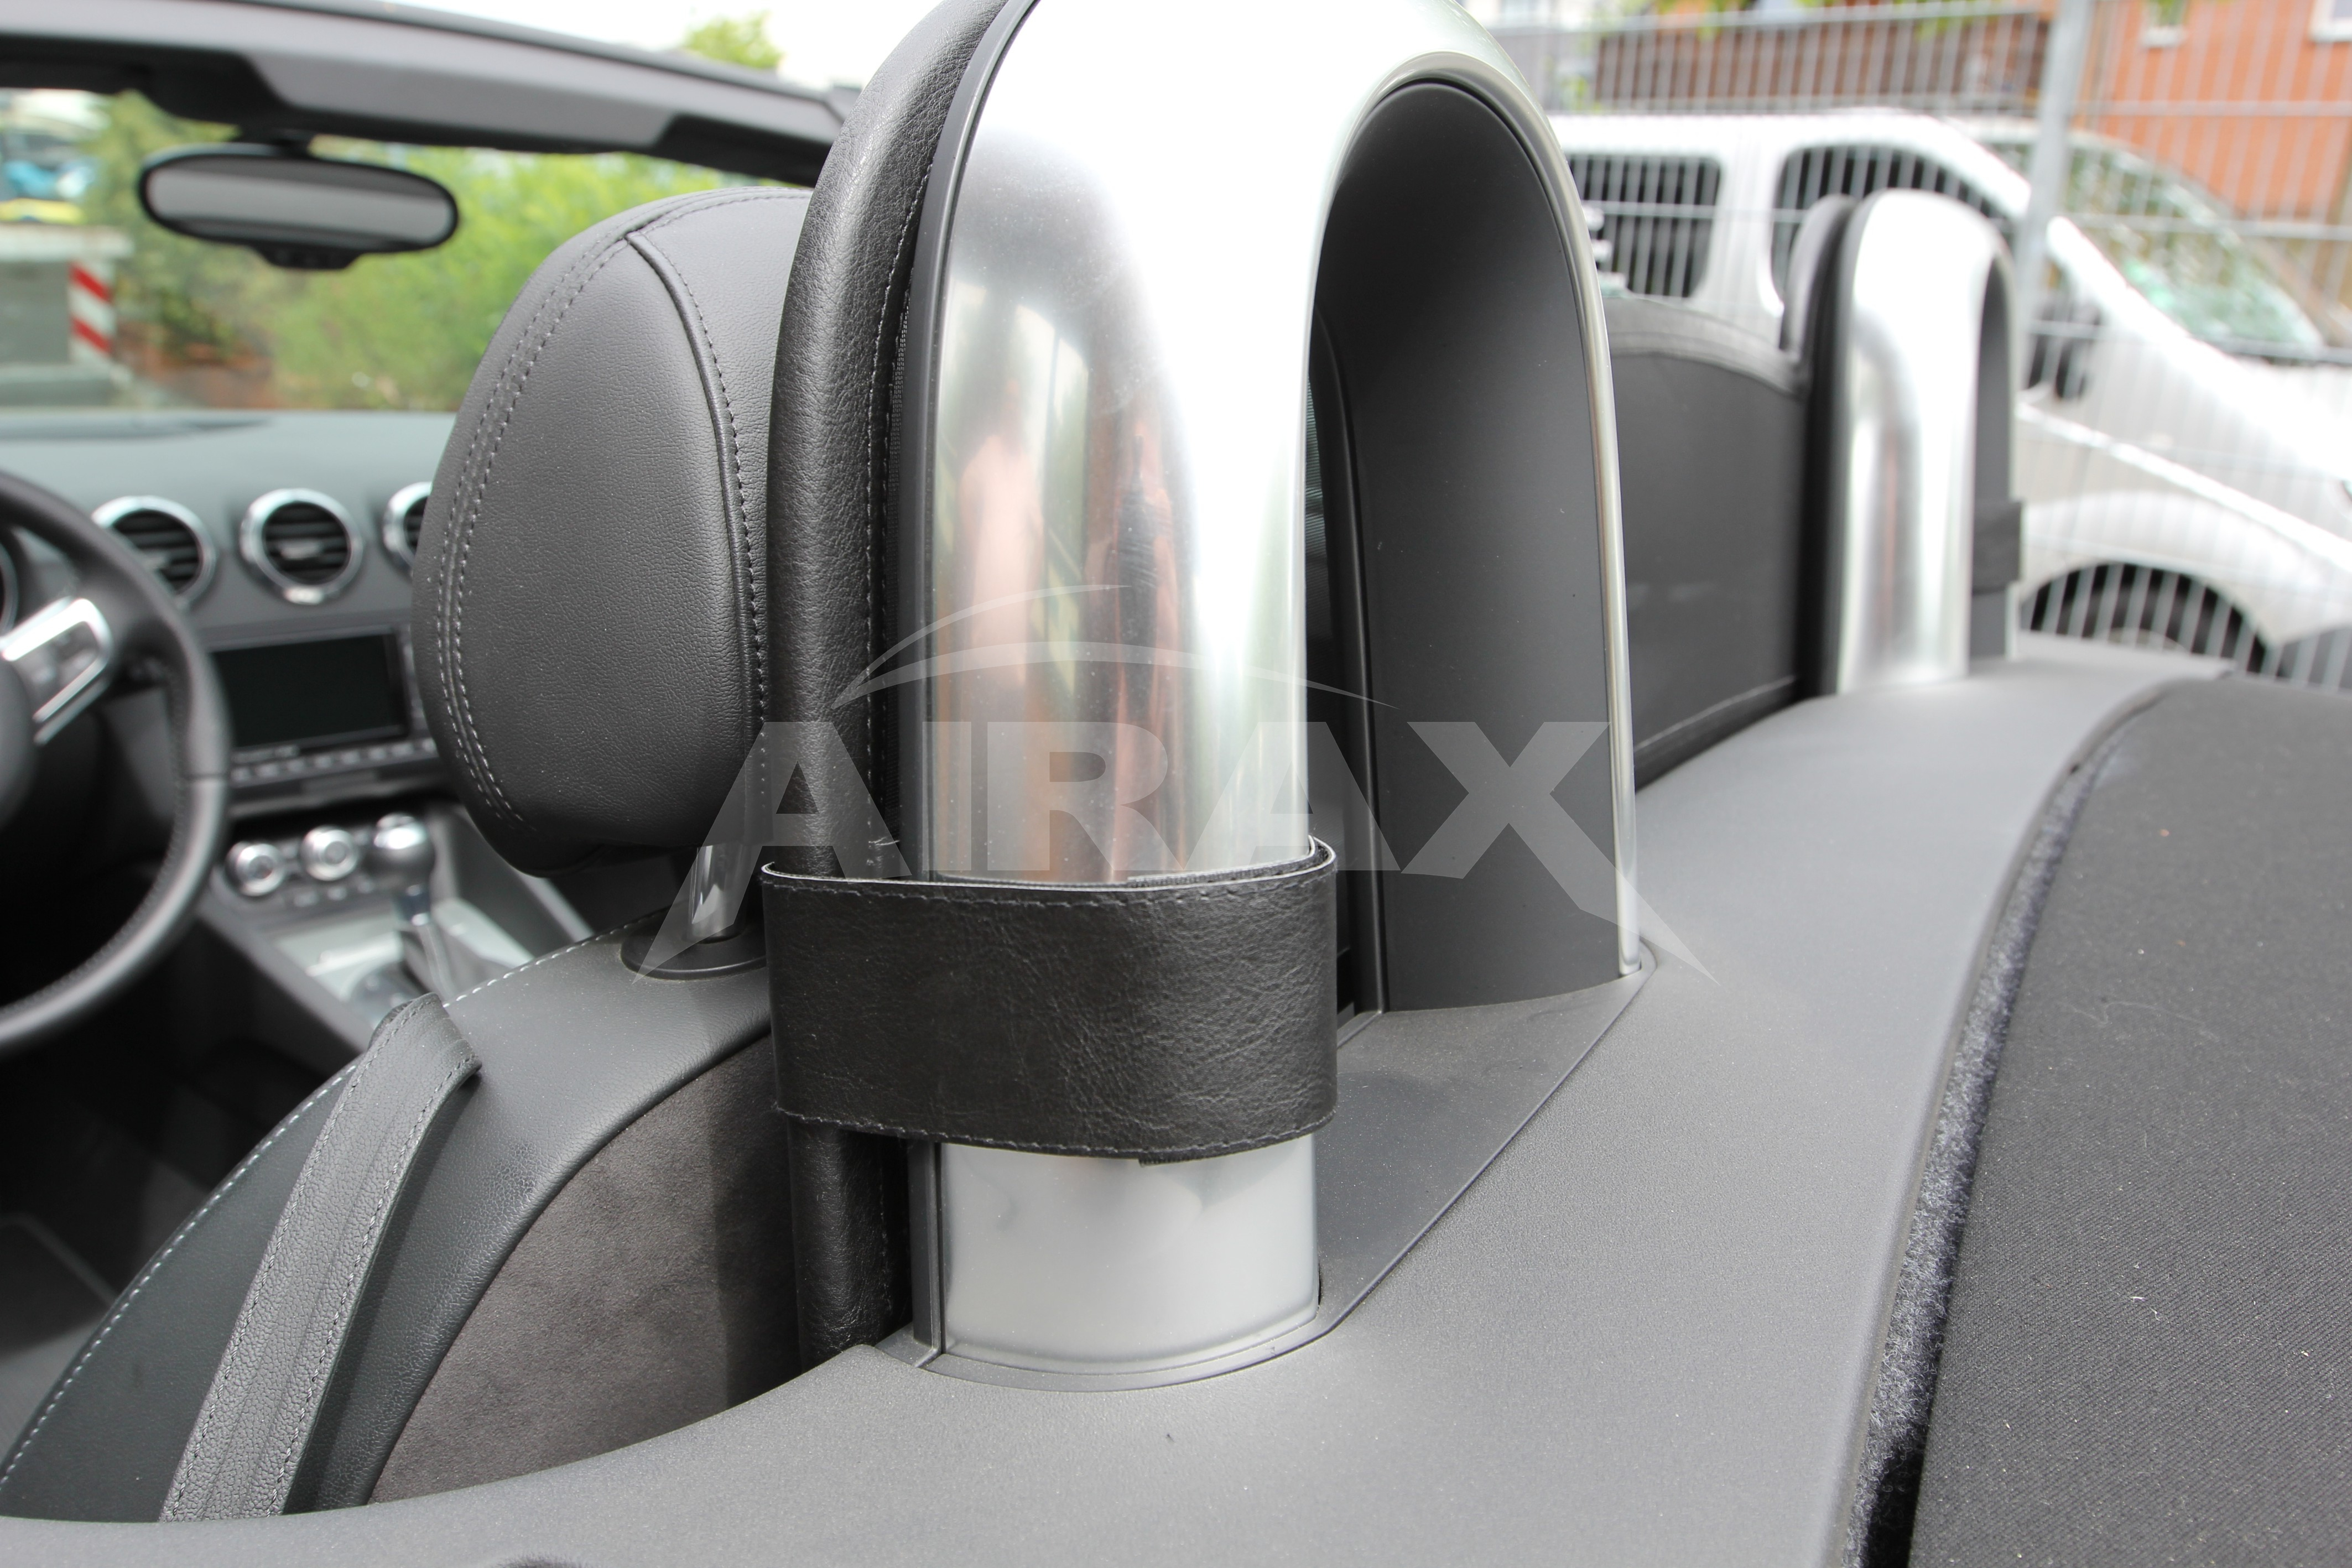 wind deflector for audi tts 8j built year 2006 2014 wsp011 ebay. Black Bedroom Furniture Sets. Home Design Ideas